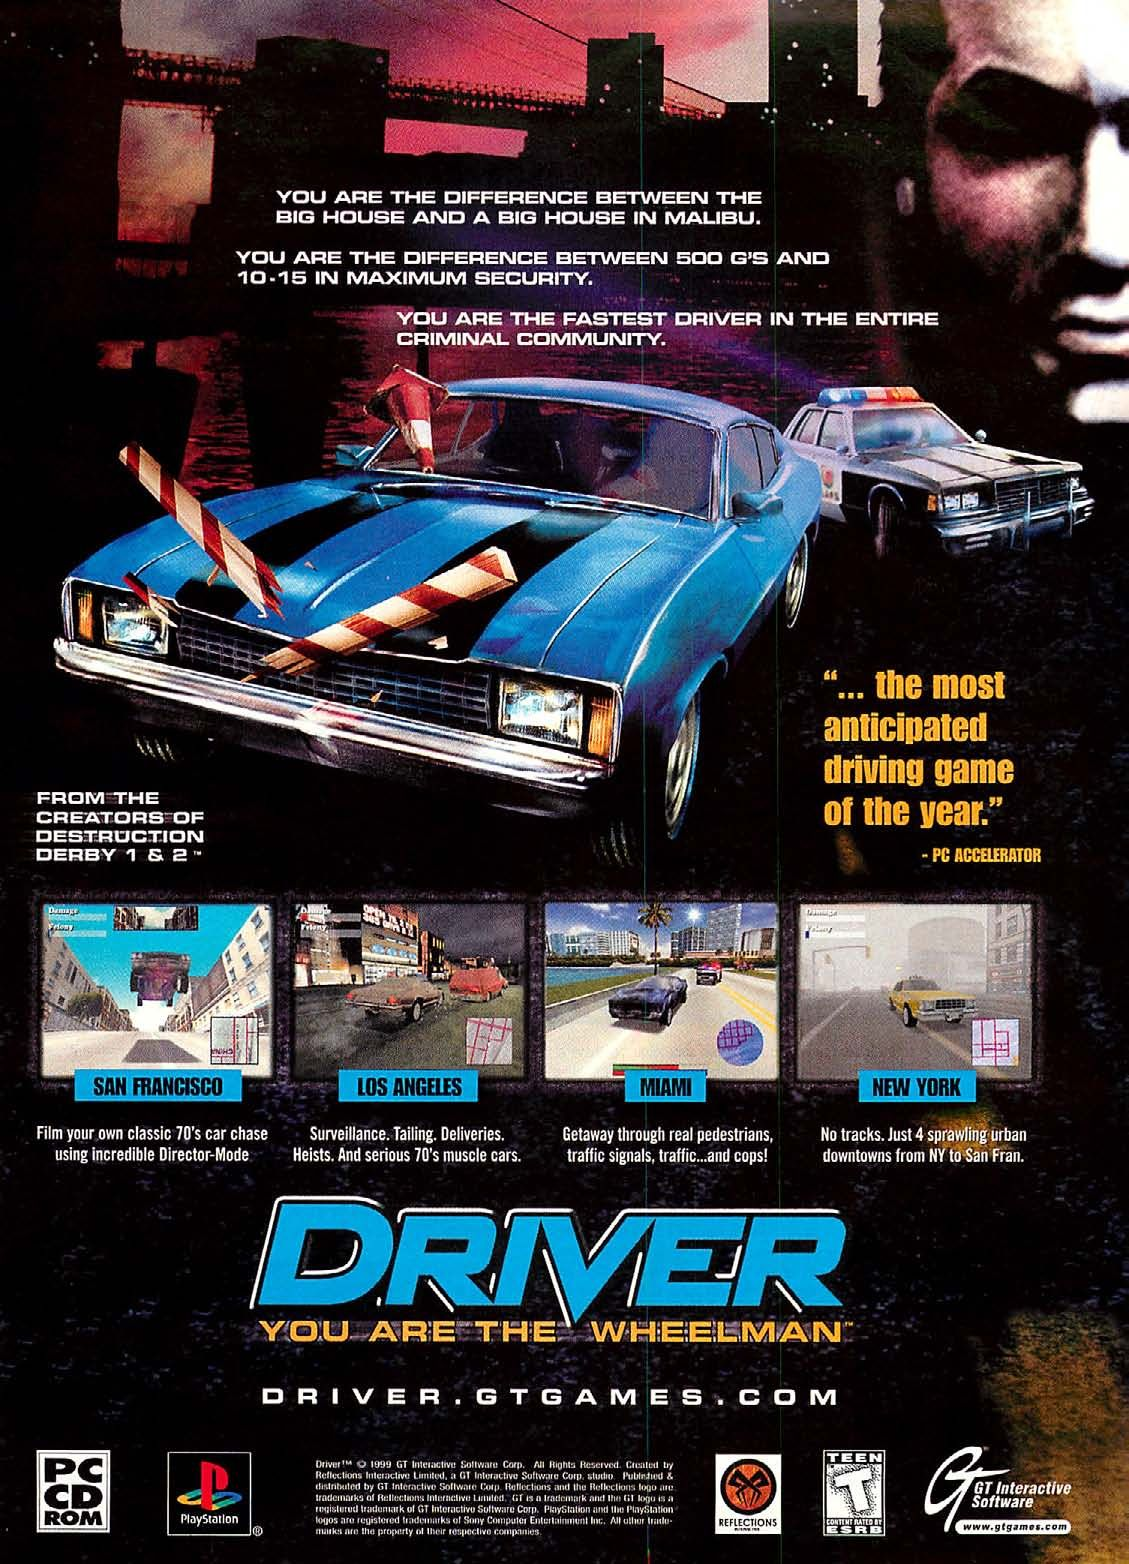 Driver: Playstation PS1 ad | Video game print, Retro games ...